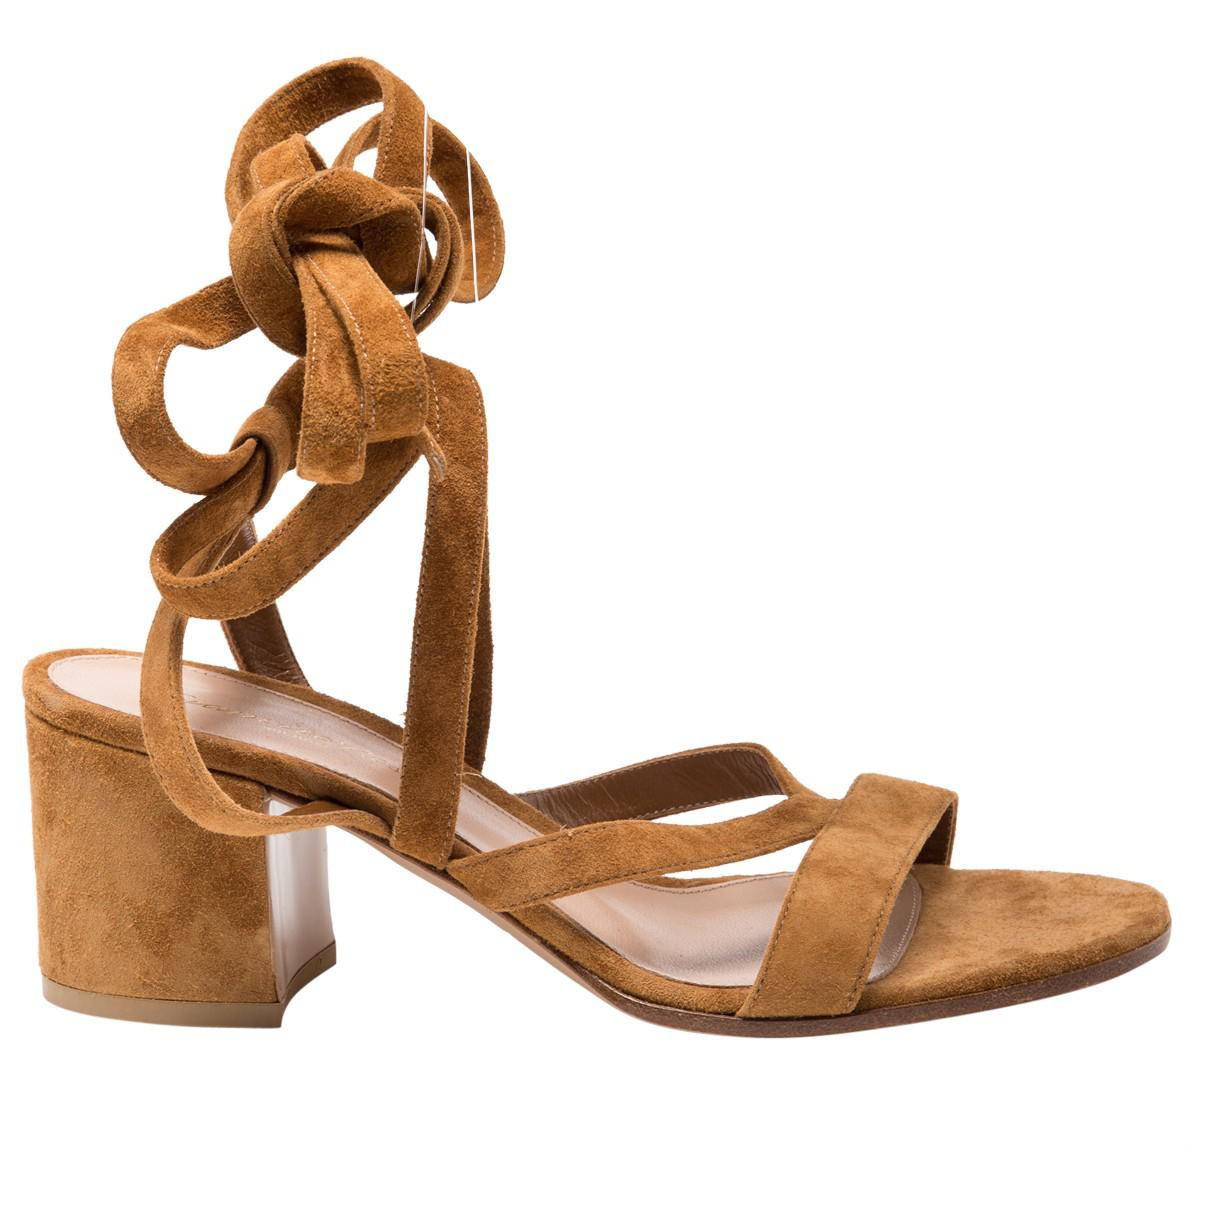 Pre-owned - Sandals Gianvito Rossi hYcc6h5n